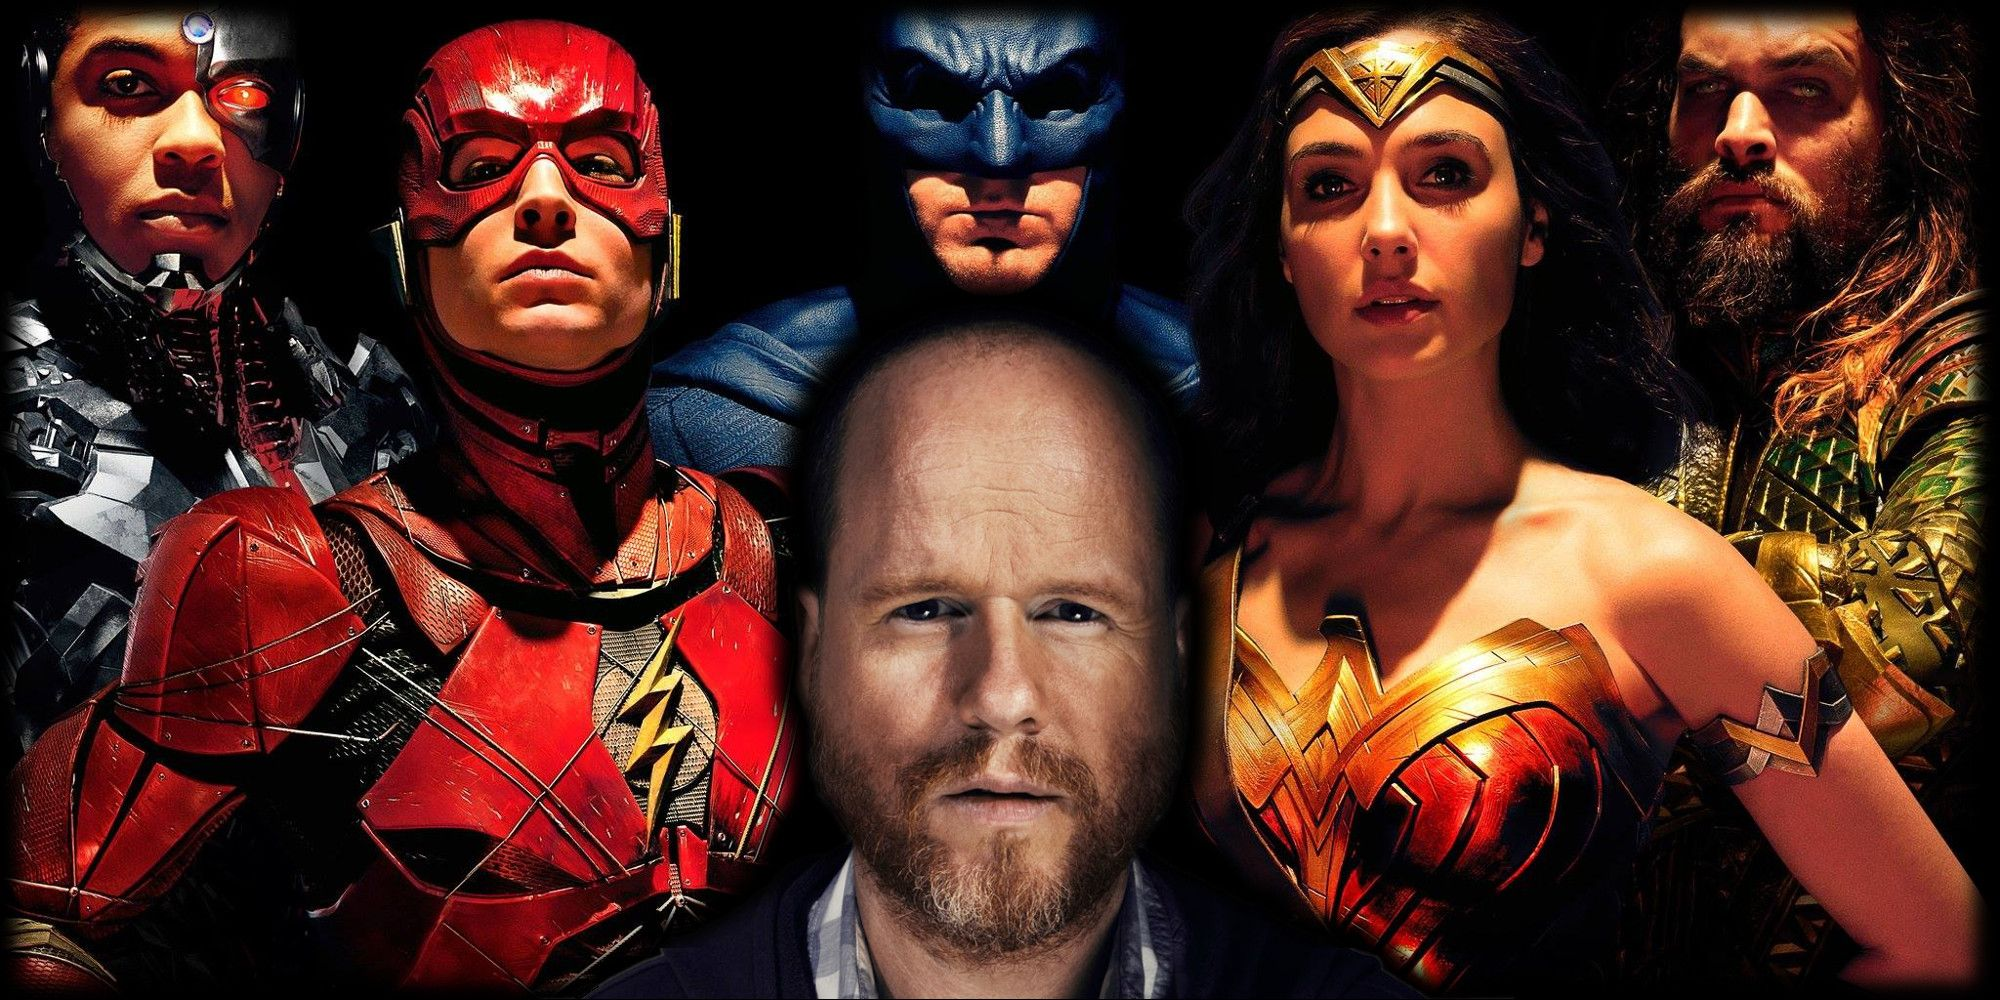 Justice League: Joss Whedon's Reshoots Script Had Almost 80 New Pages